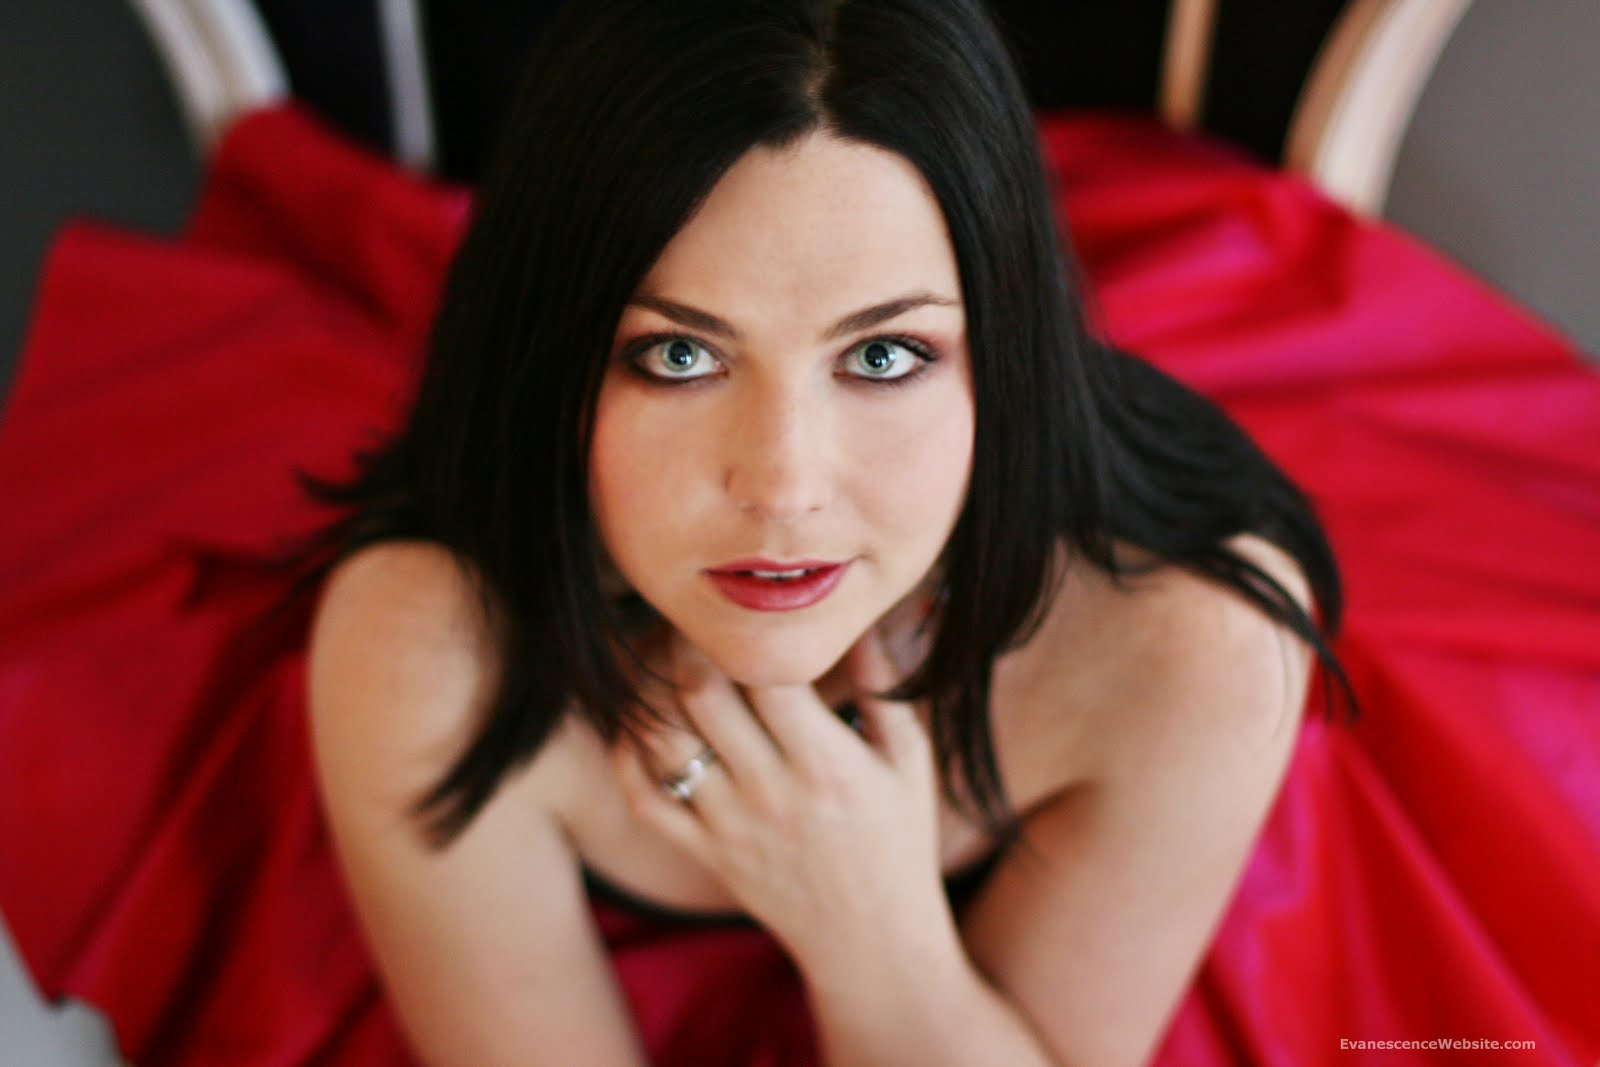 Amy Lee - With or Without You